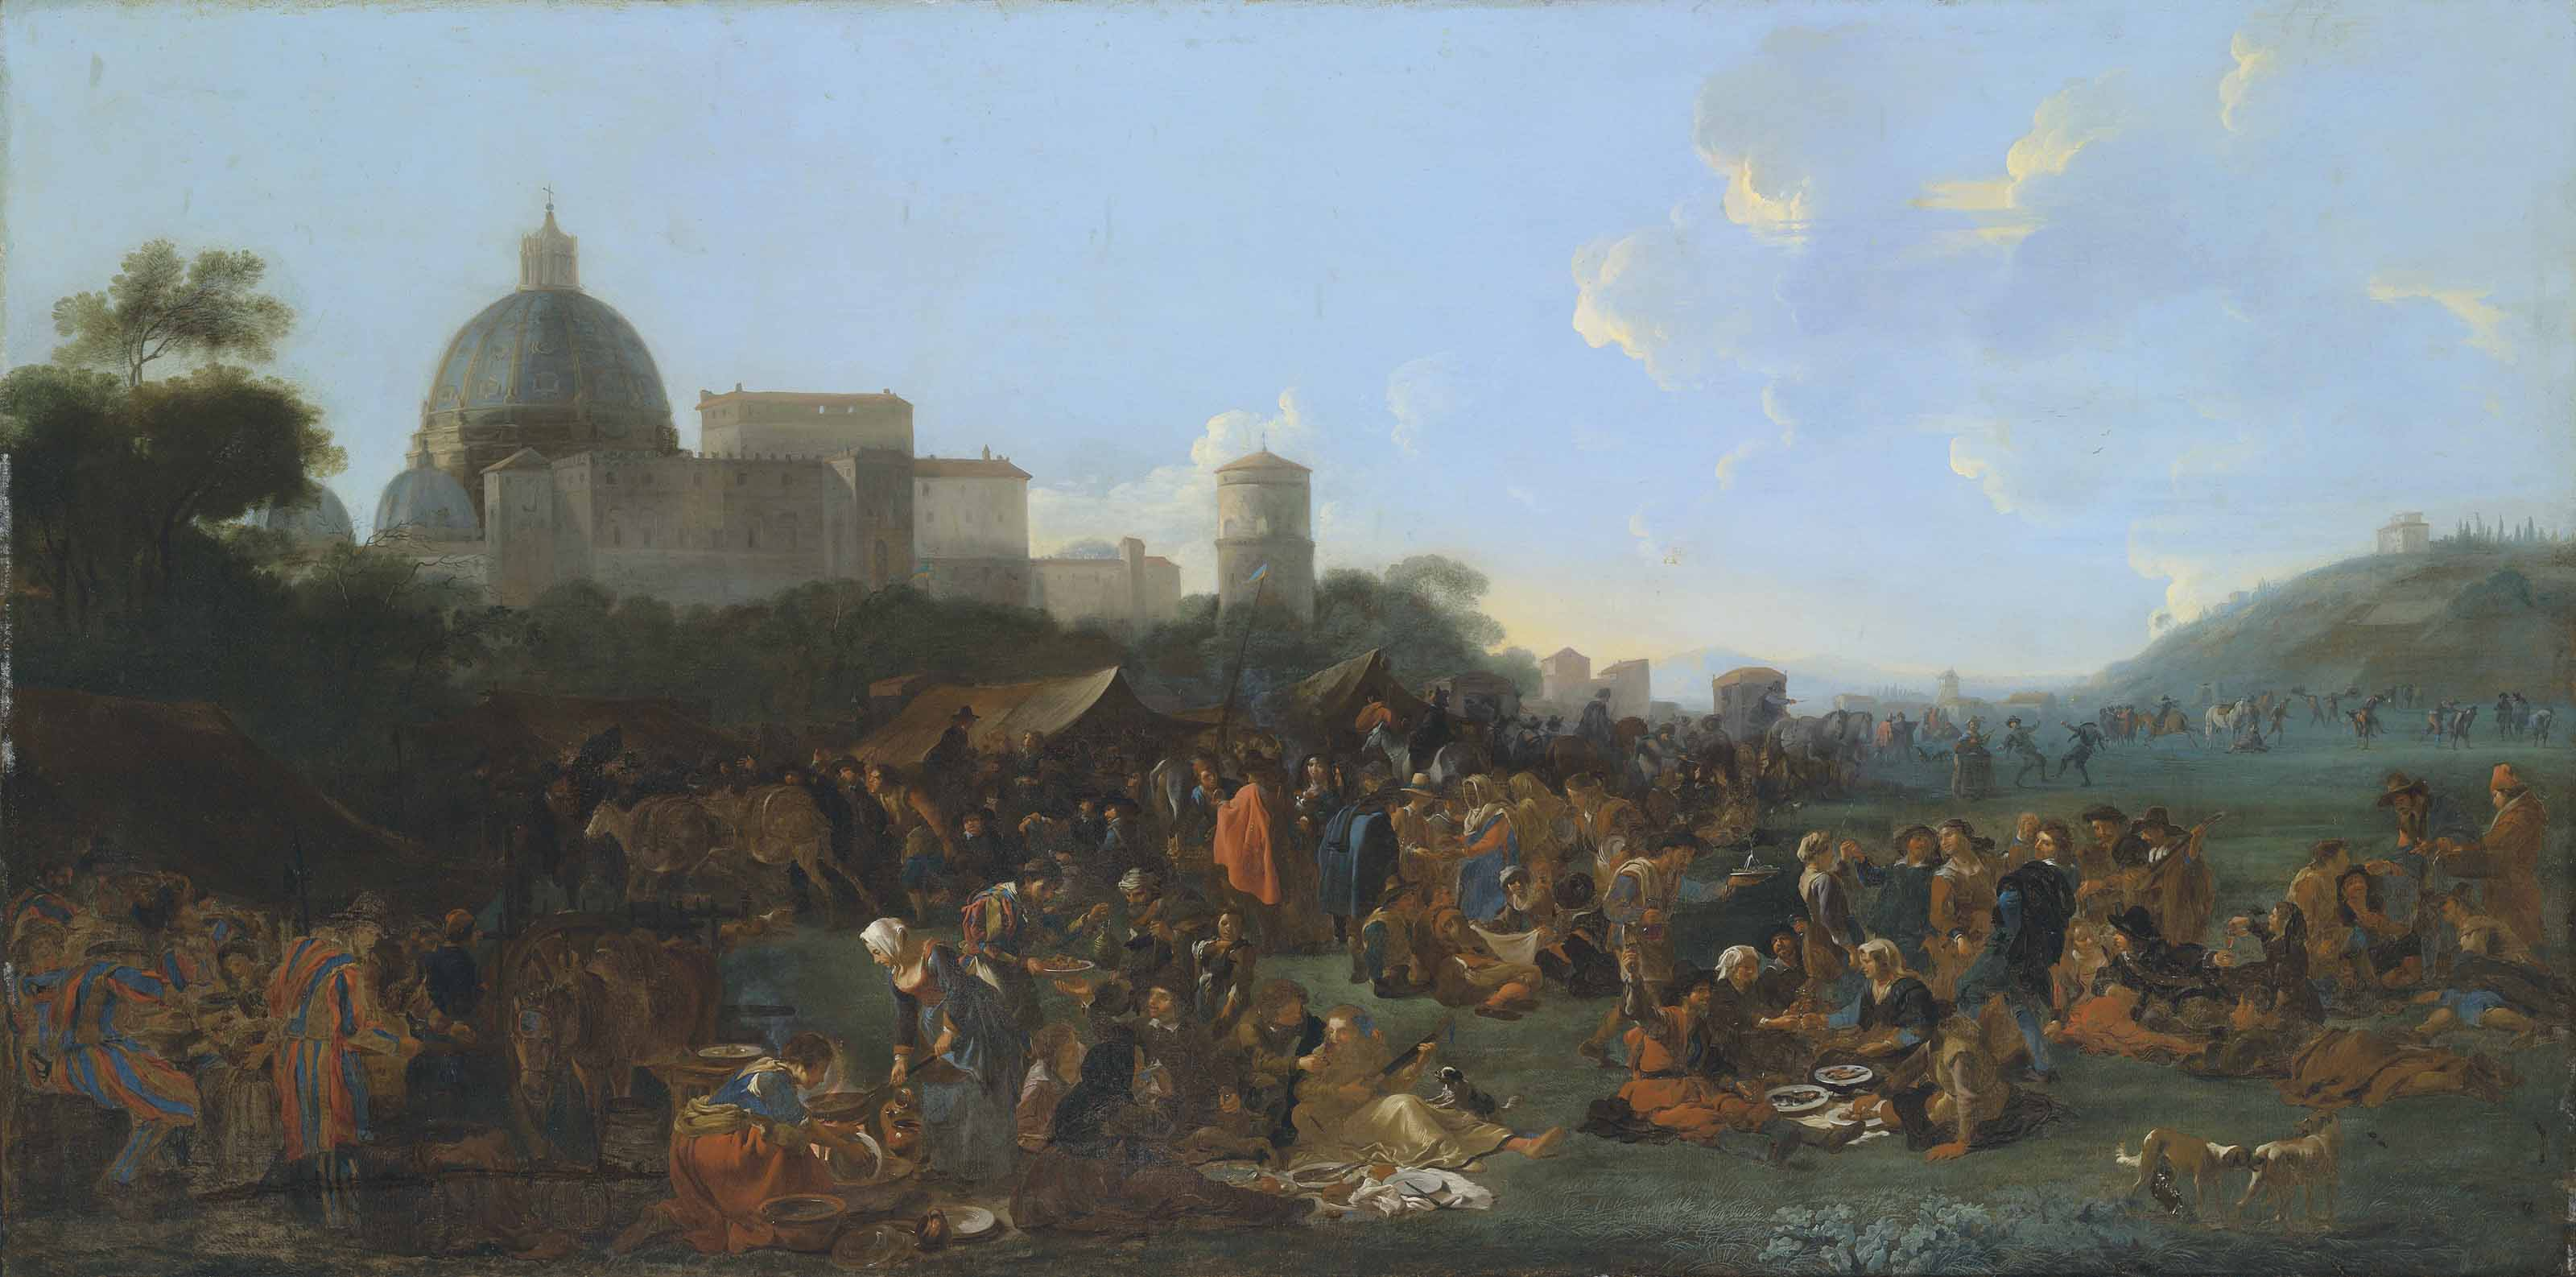 Figures feasting at a fair in Prati, outside the walls of Rome, with the Basilica di San Pietro and Monte Mario beyond